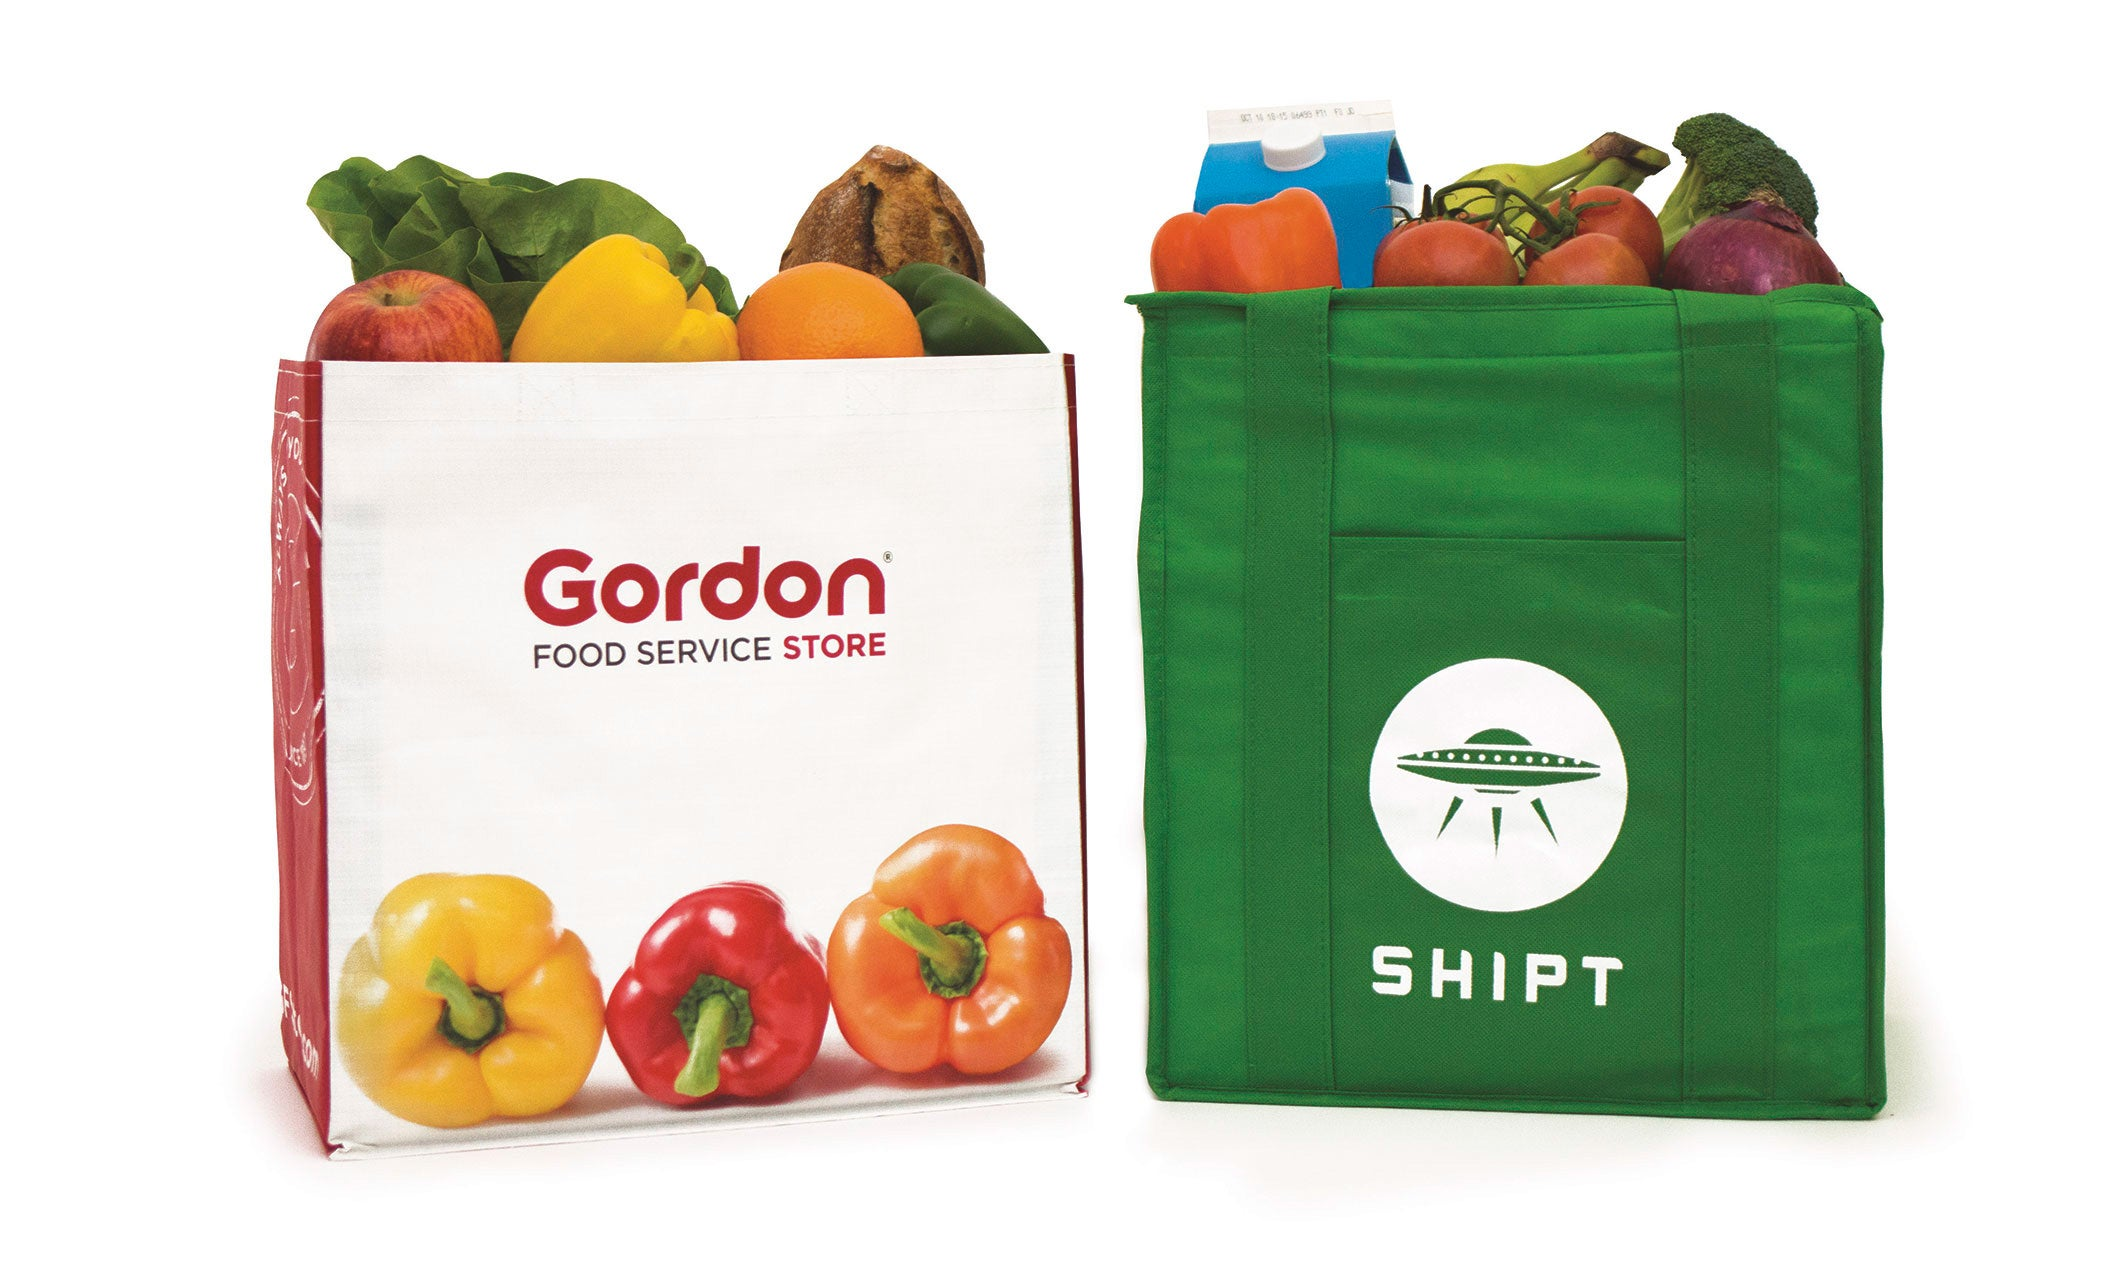 Gordon Food Service Store and Shipt